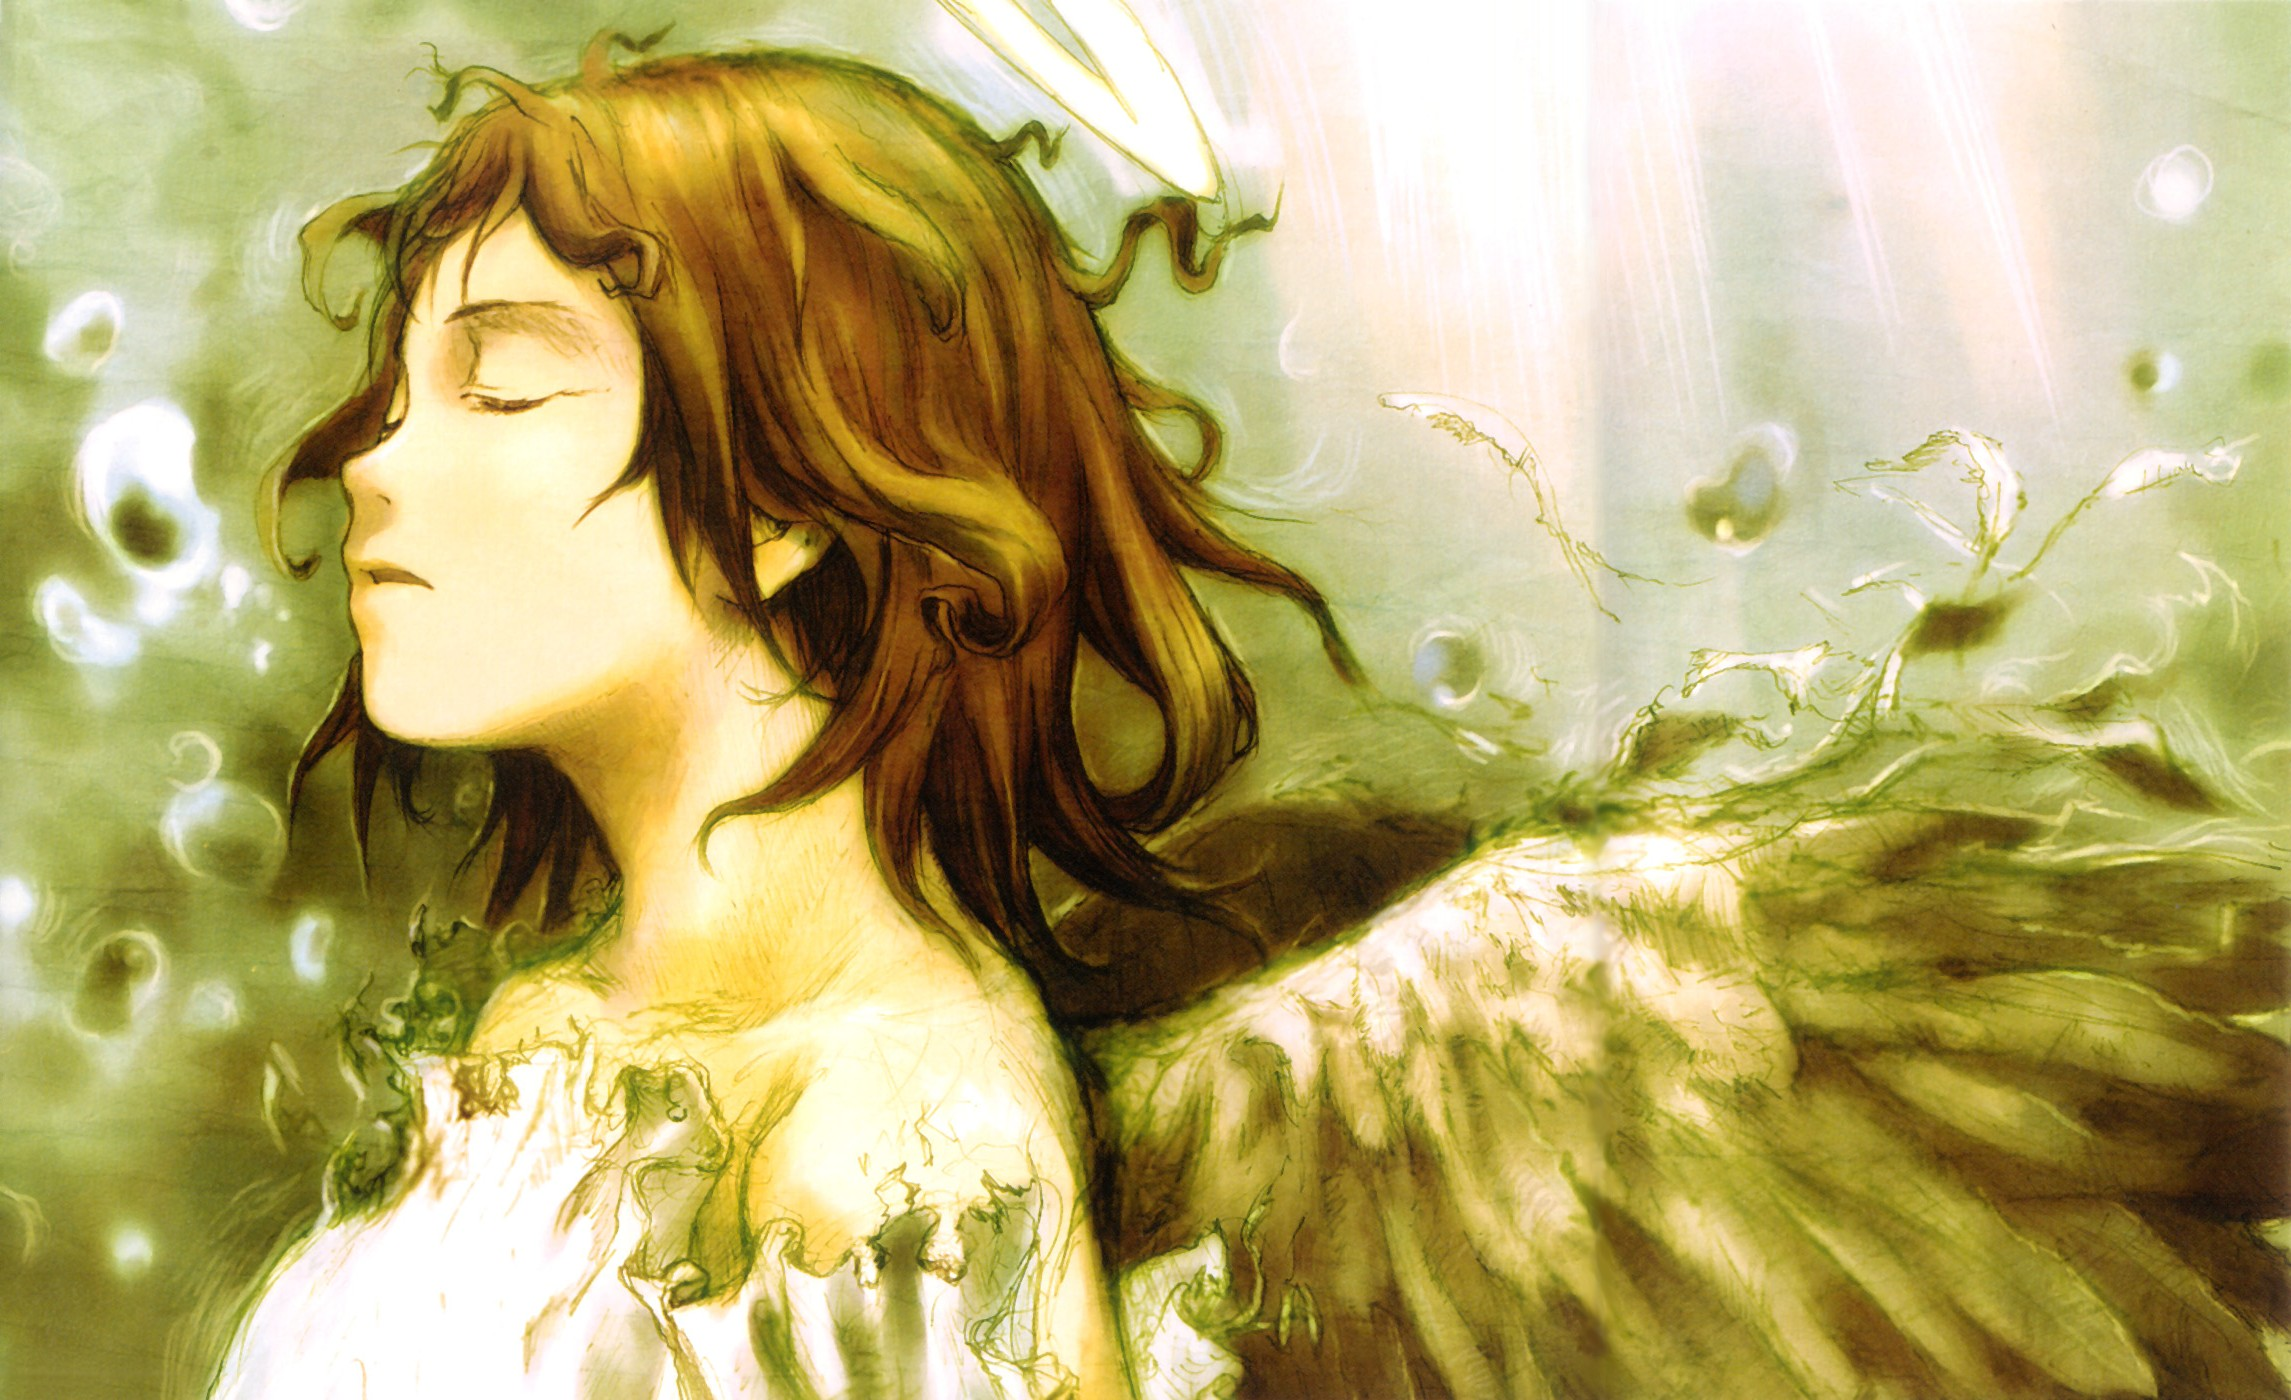 Haibane Renmei: The Complete Series Review | The Glorio Blog